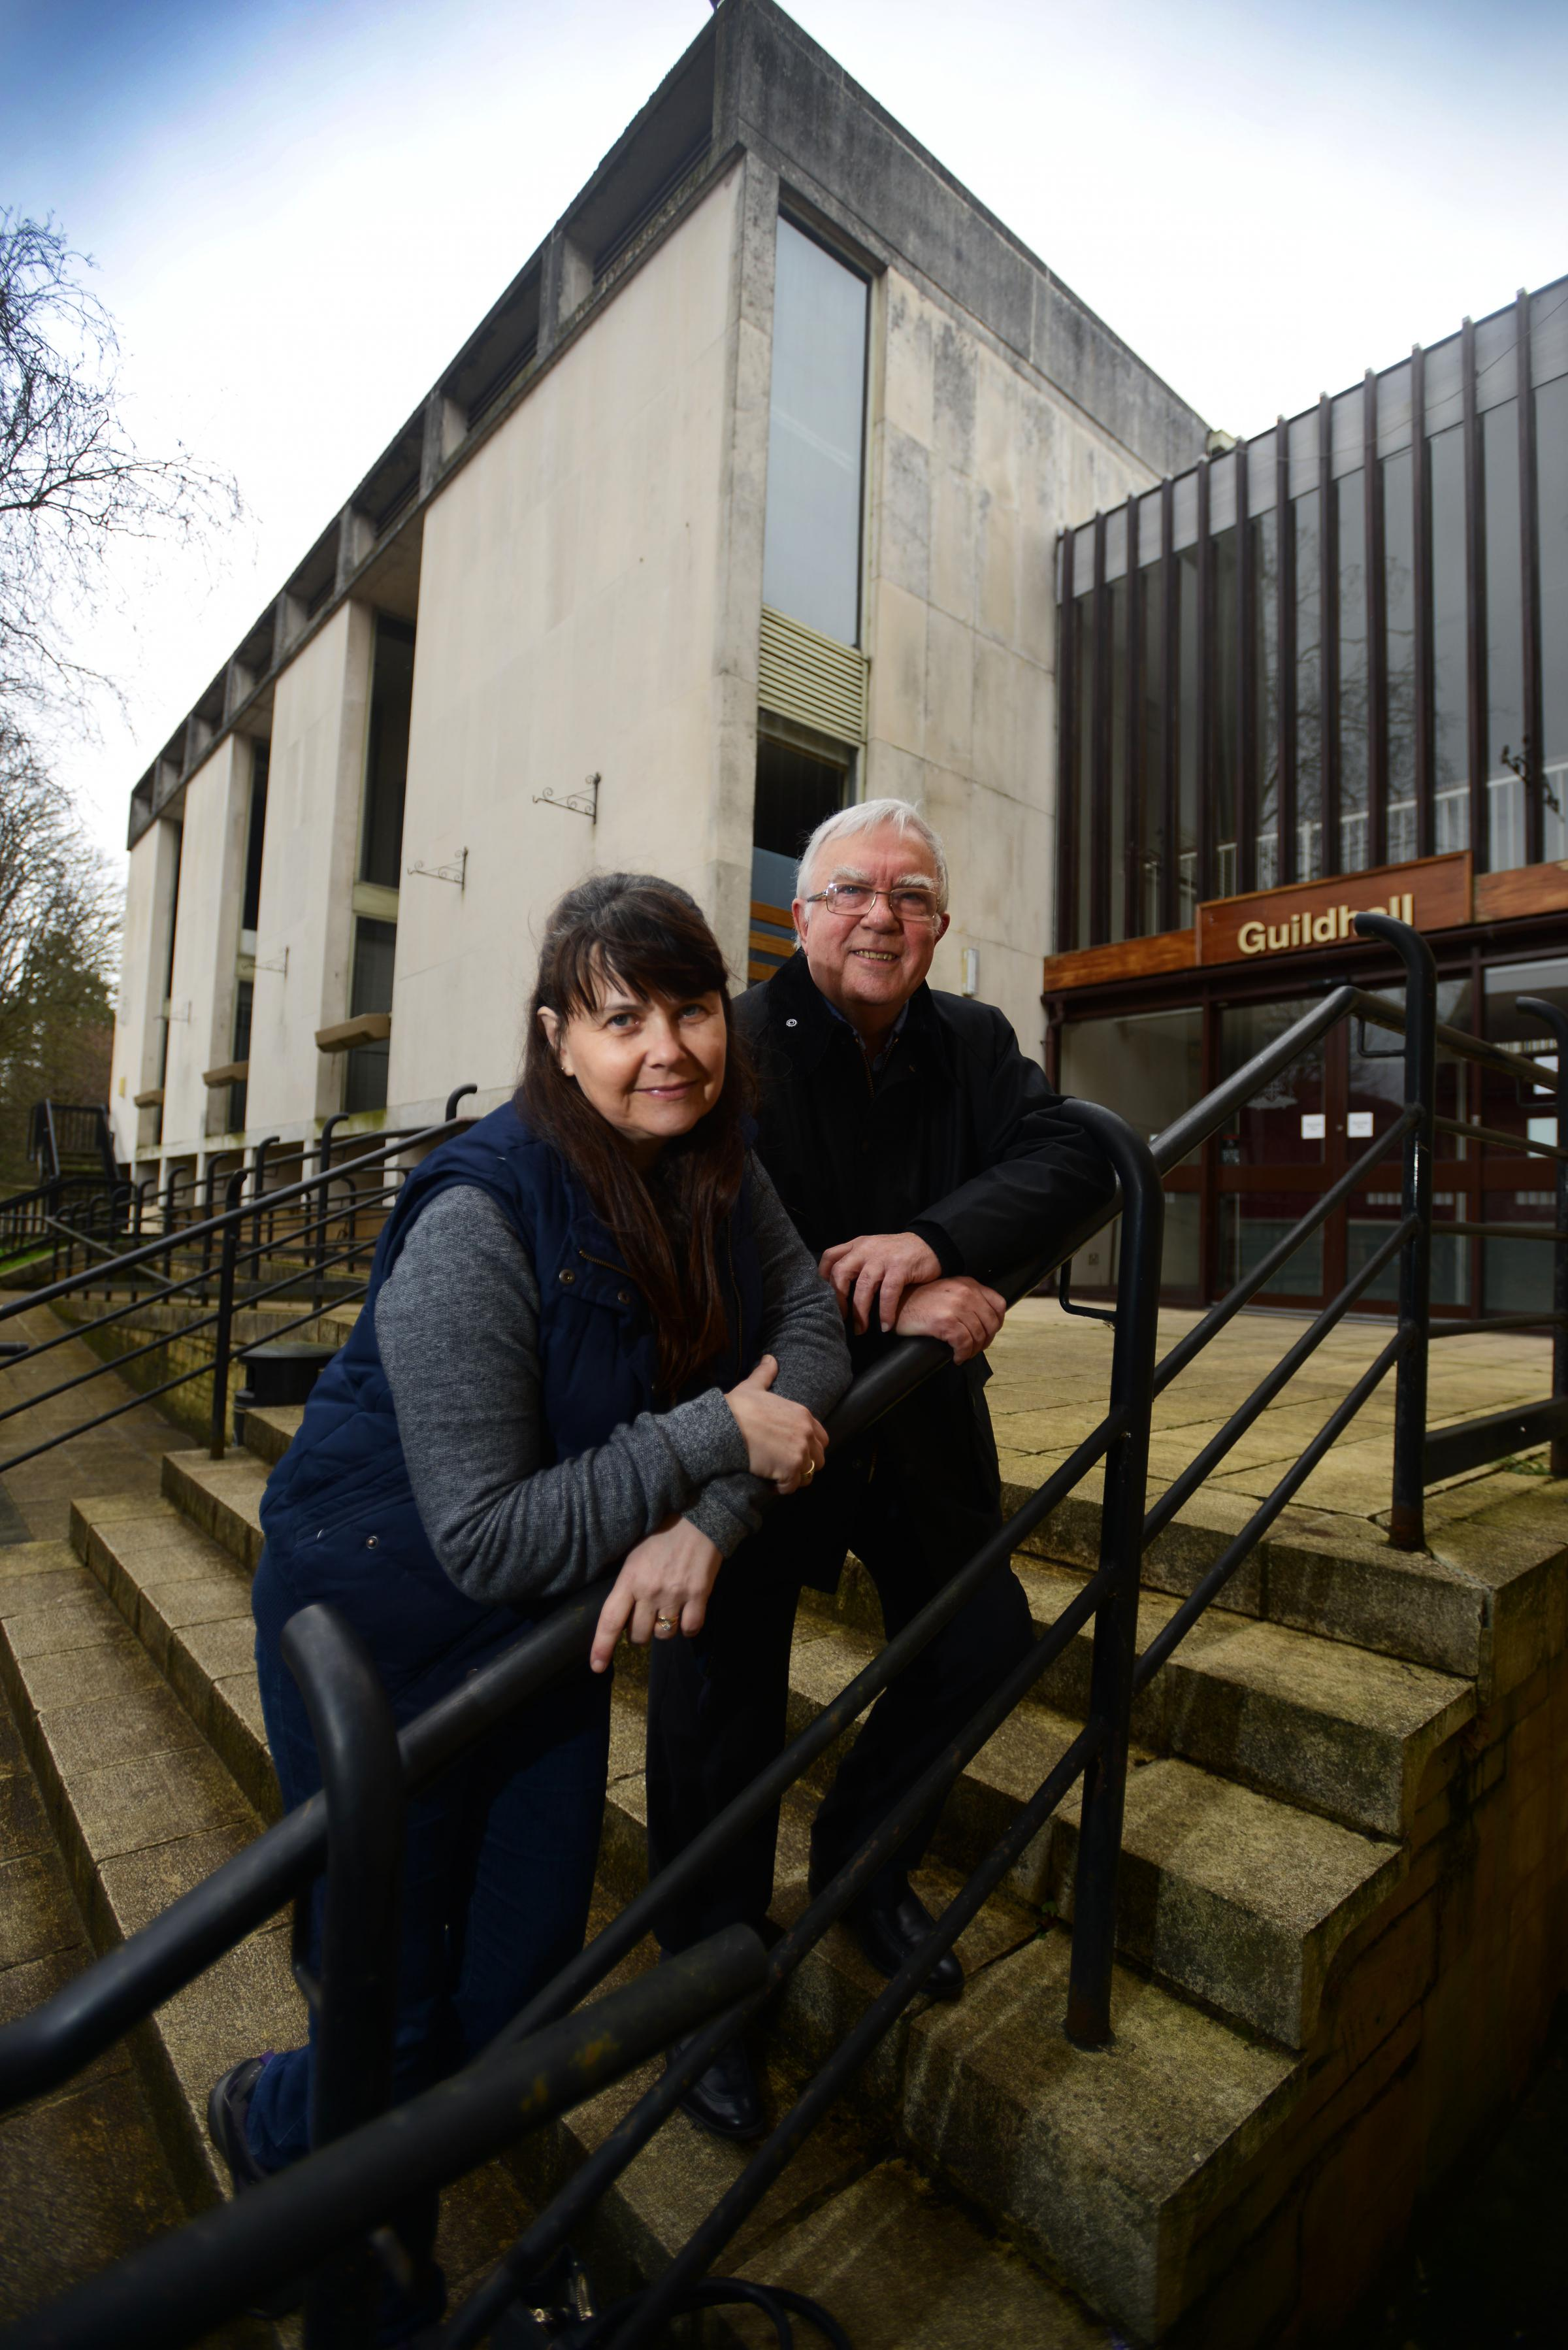 Abingdon town councillors Jan Morter and Dennis Garrett outside the Guildhall which the council plans to revamp, providing upgraded facilities including a cinema and a cafe